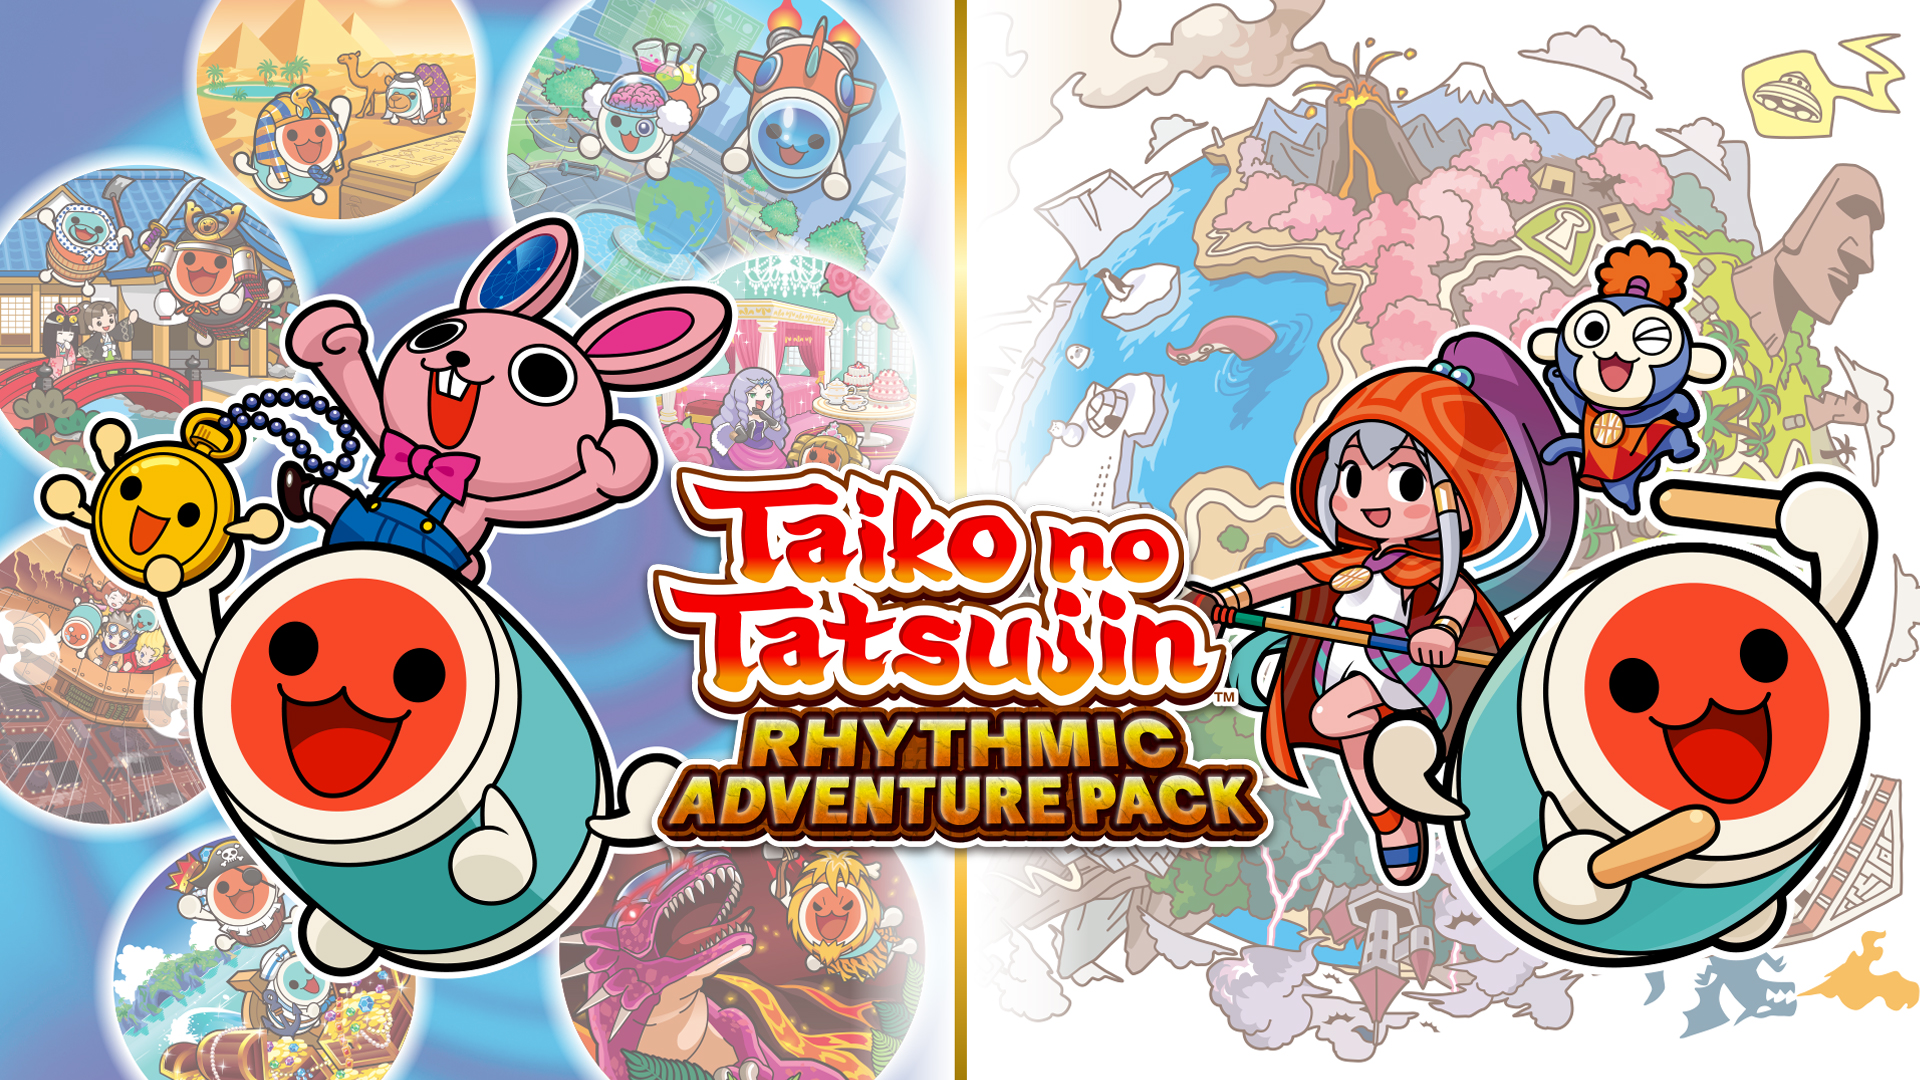 Taiko No Tatsujin Rhythm Adventure comes to the West for the first time.